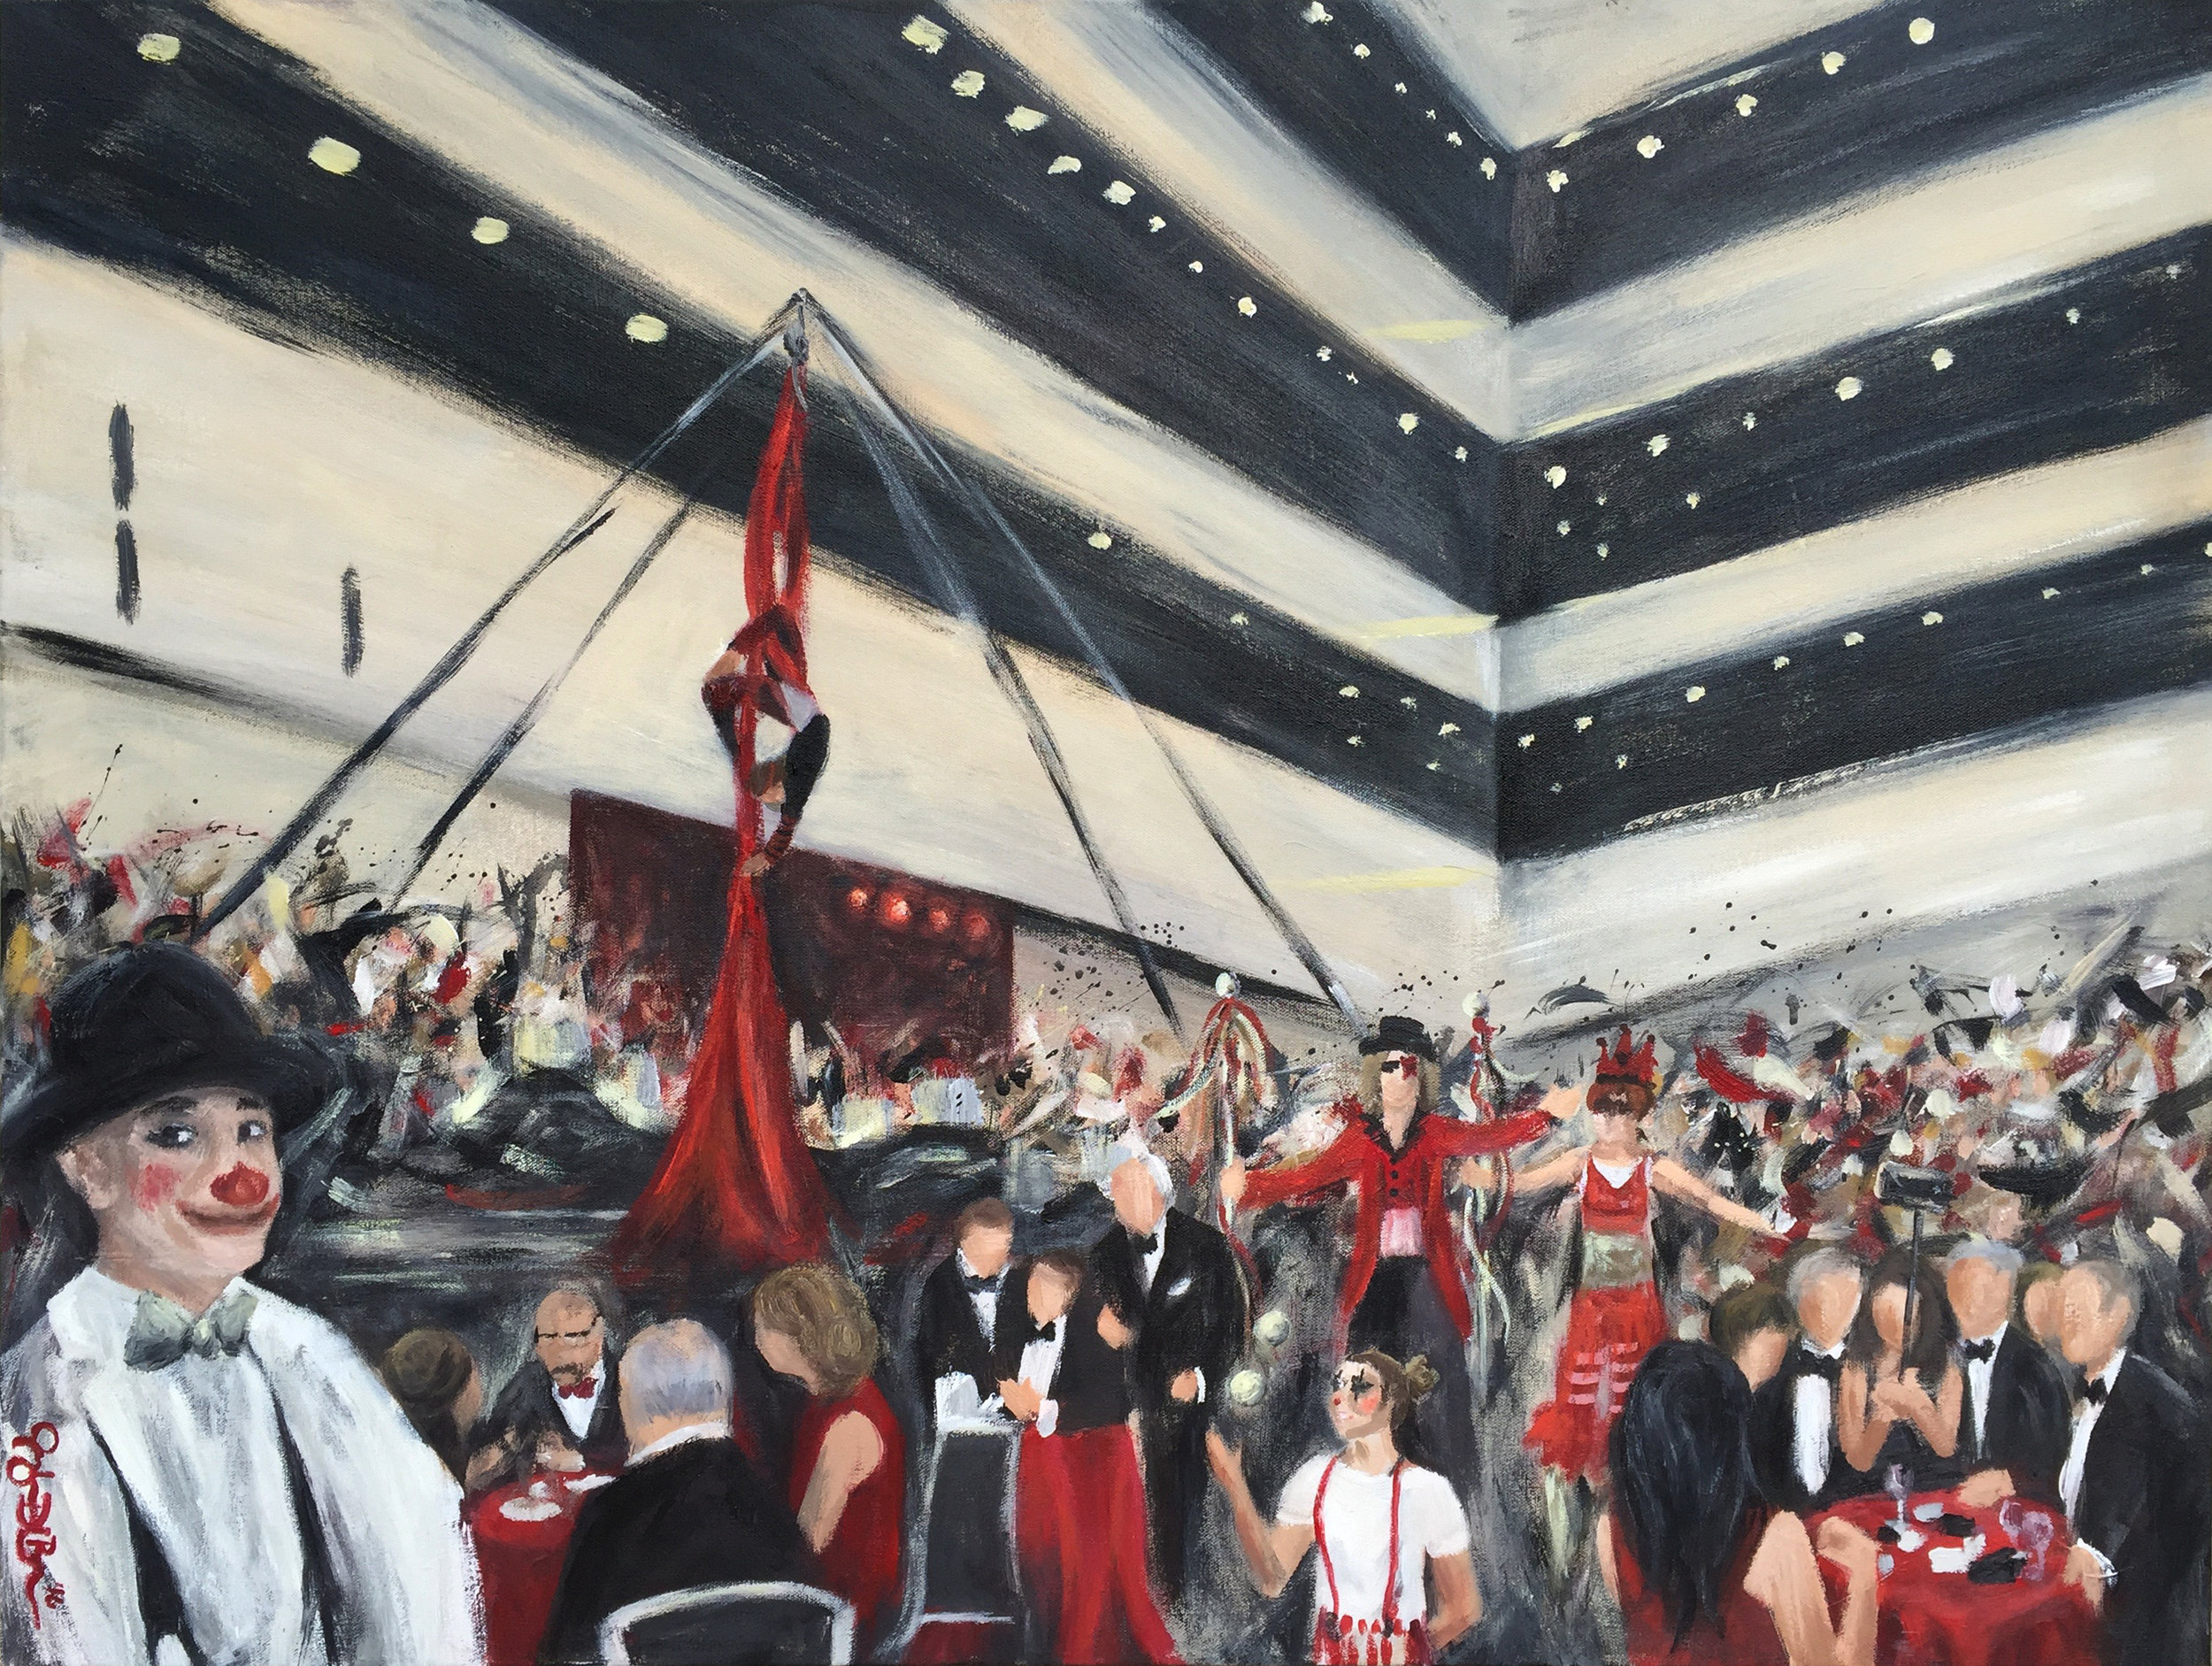 Completed Live Event Painting - Cleveland AHA Heart & Stroke Ball 2016 by Cleveland Event Painter Jacqueline DelBrocco